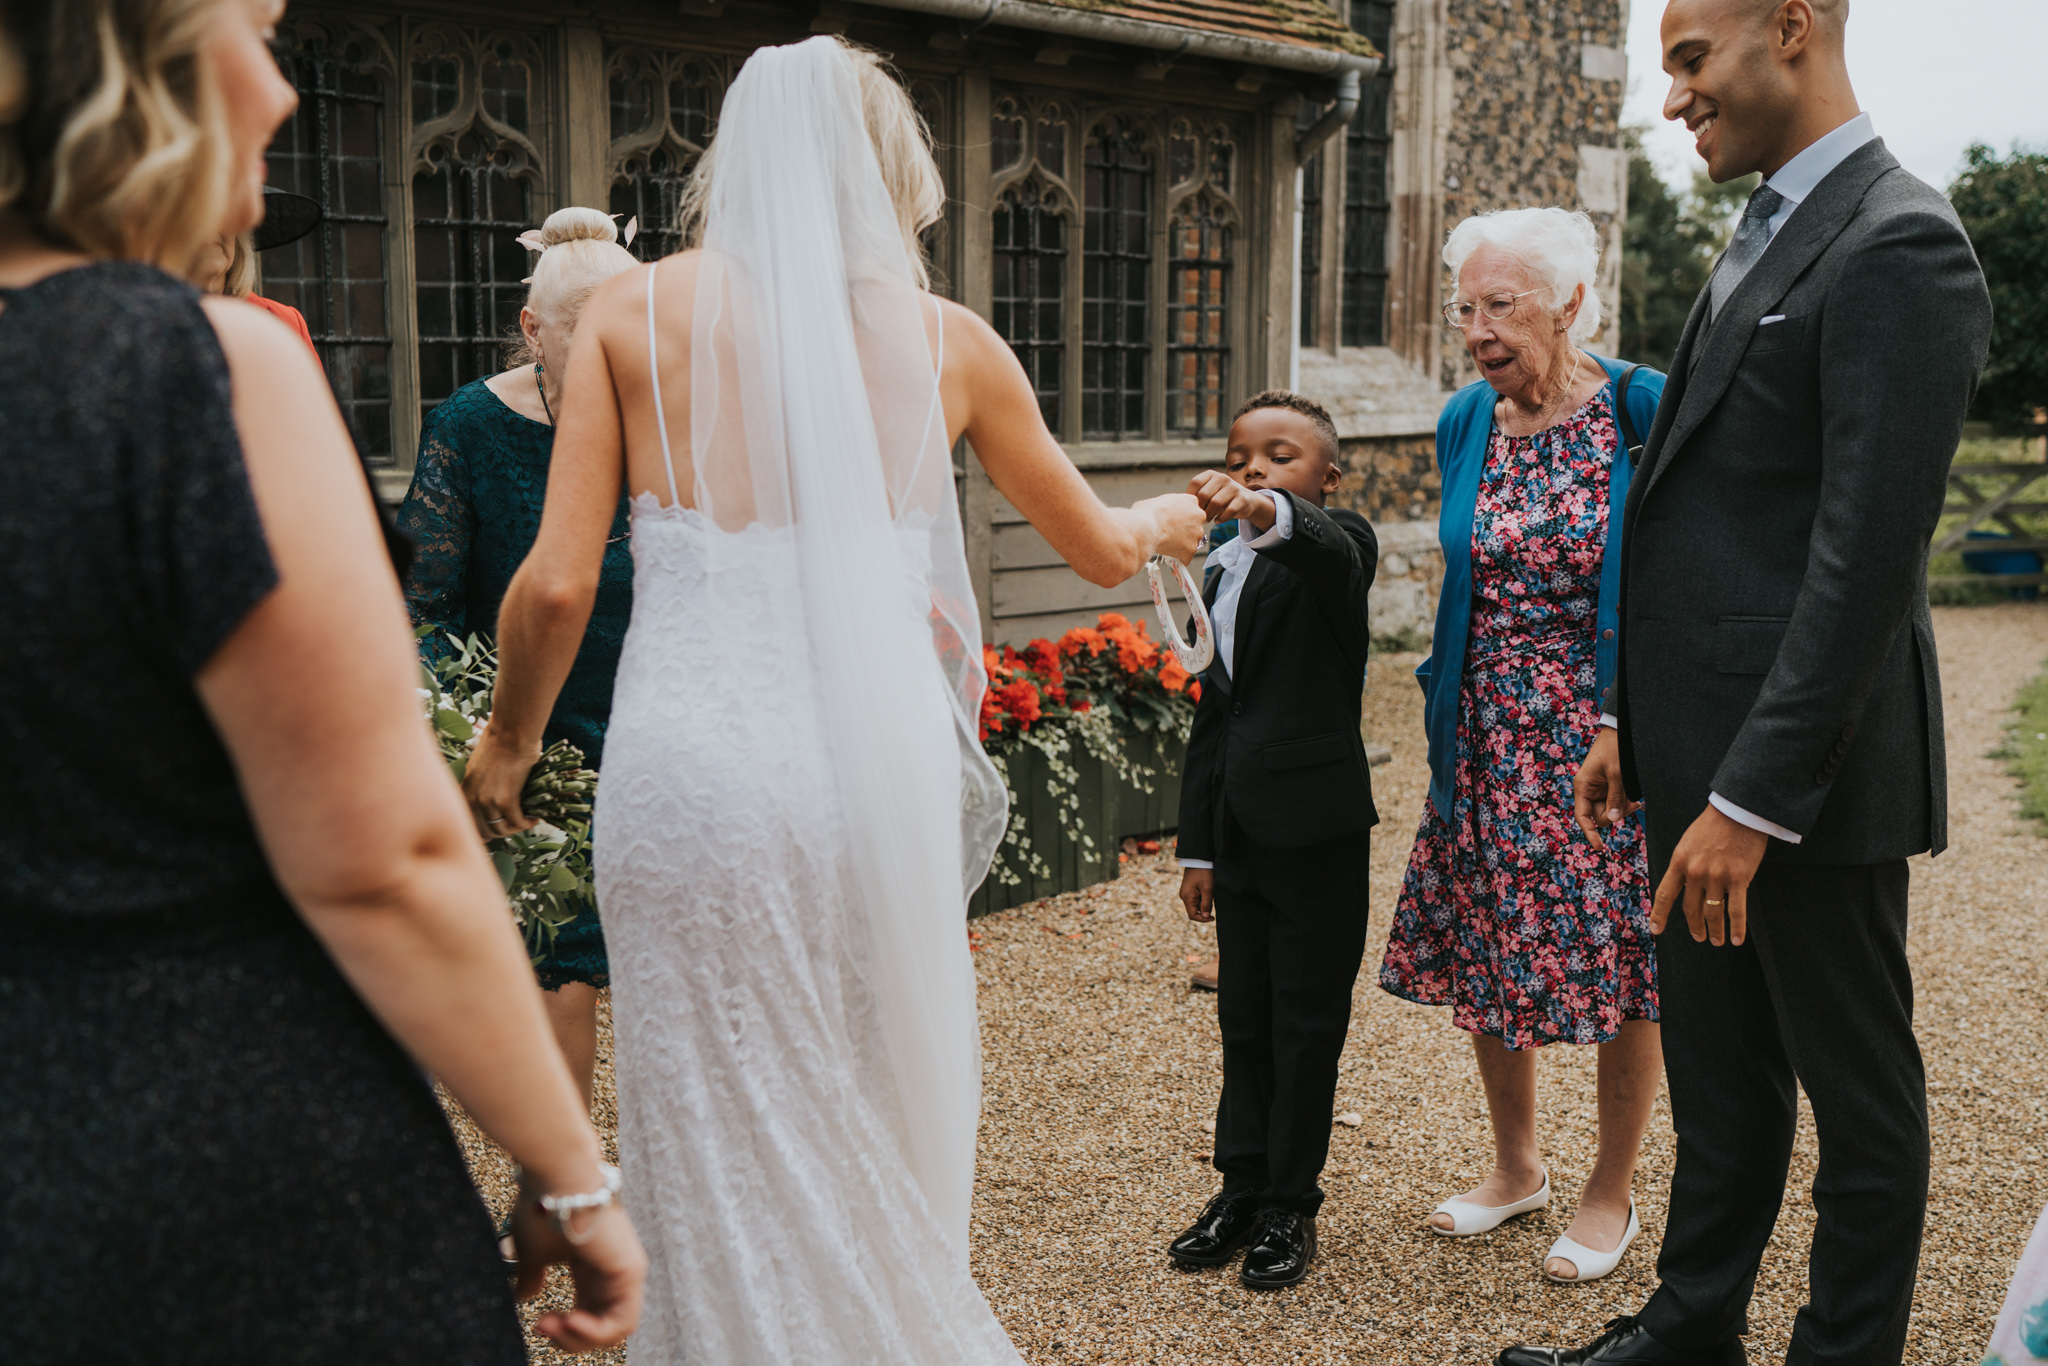 intimate-english-church-wedding-sarah-alex-colchester-essex-grace-elizabeth-colchester-essex-alternative-wedding-lifestyle-photographer-essex-suffolk-norfolk-devon (68 of 92).jpg